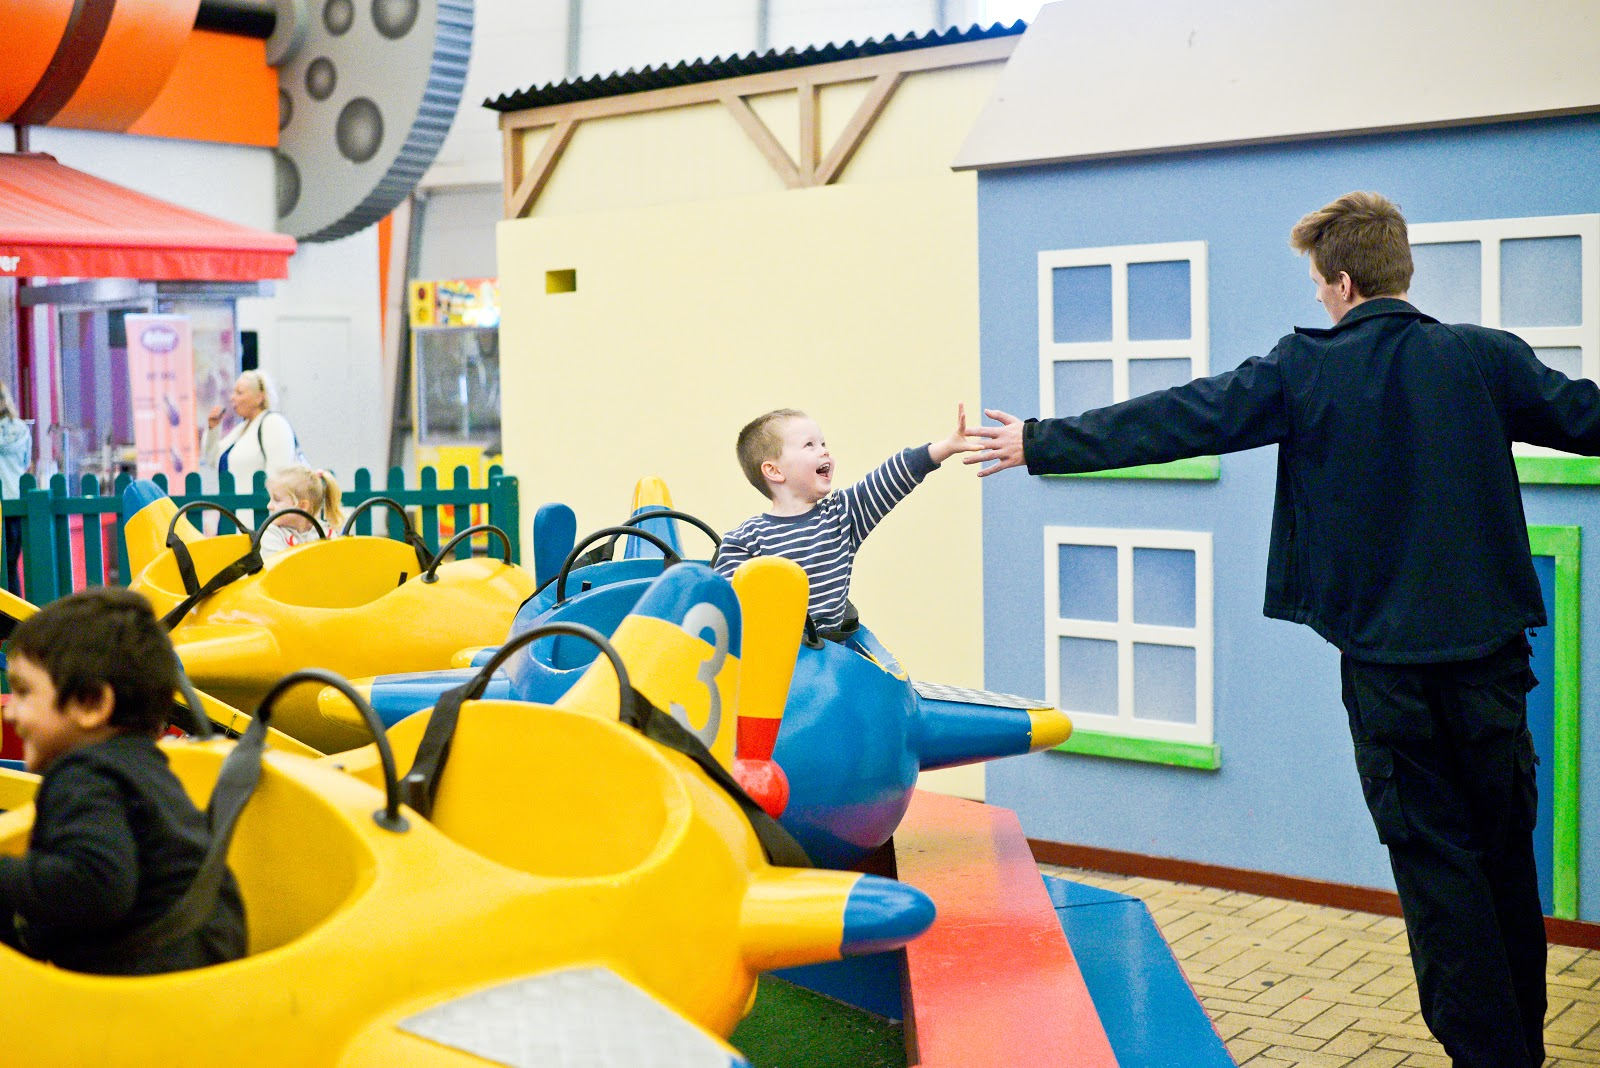 Butlins bognor regis just for tots review, butlins, butlins bognor regis, just for tots, uk holiday for kids under 5,